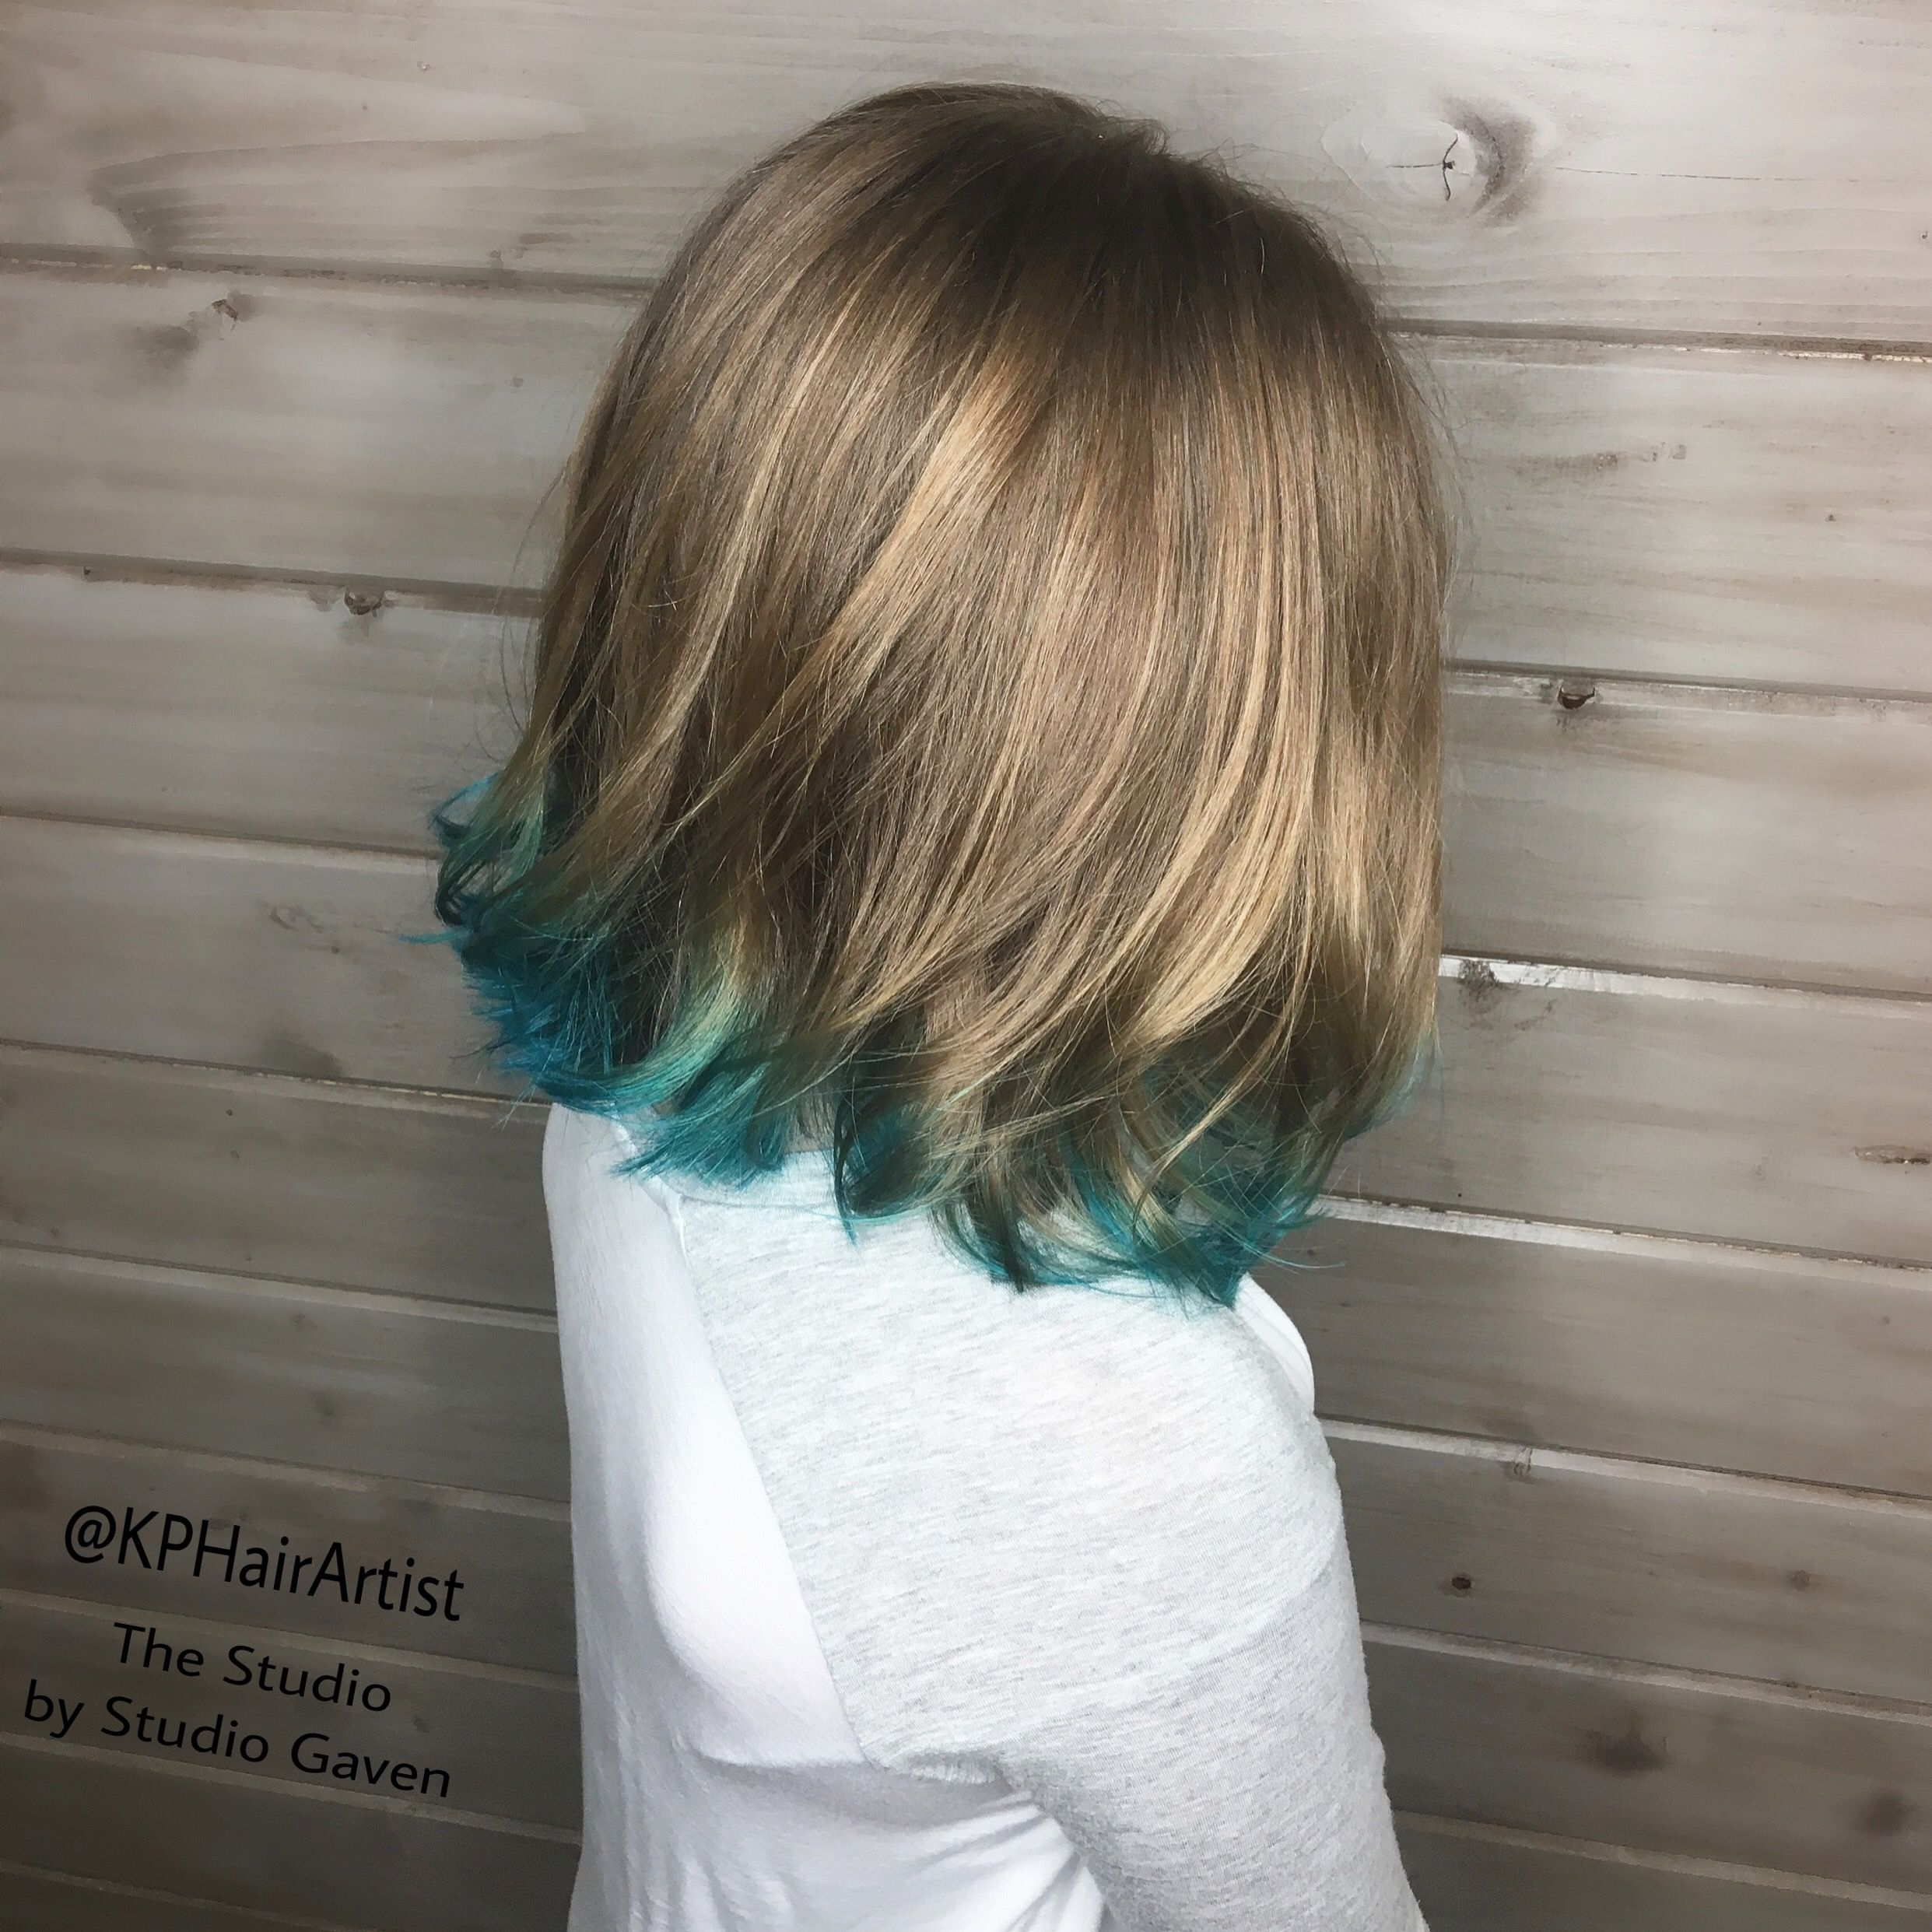 Teal Tipped Hair A Pop Of Color For Summer 2017 Studiogaven Nashvillehairstylist Hair Styles Long Hair Styles Hair Stylist